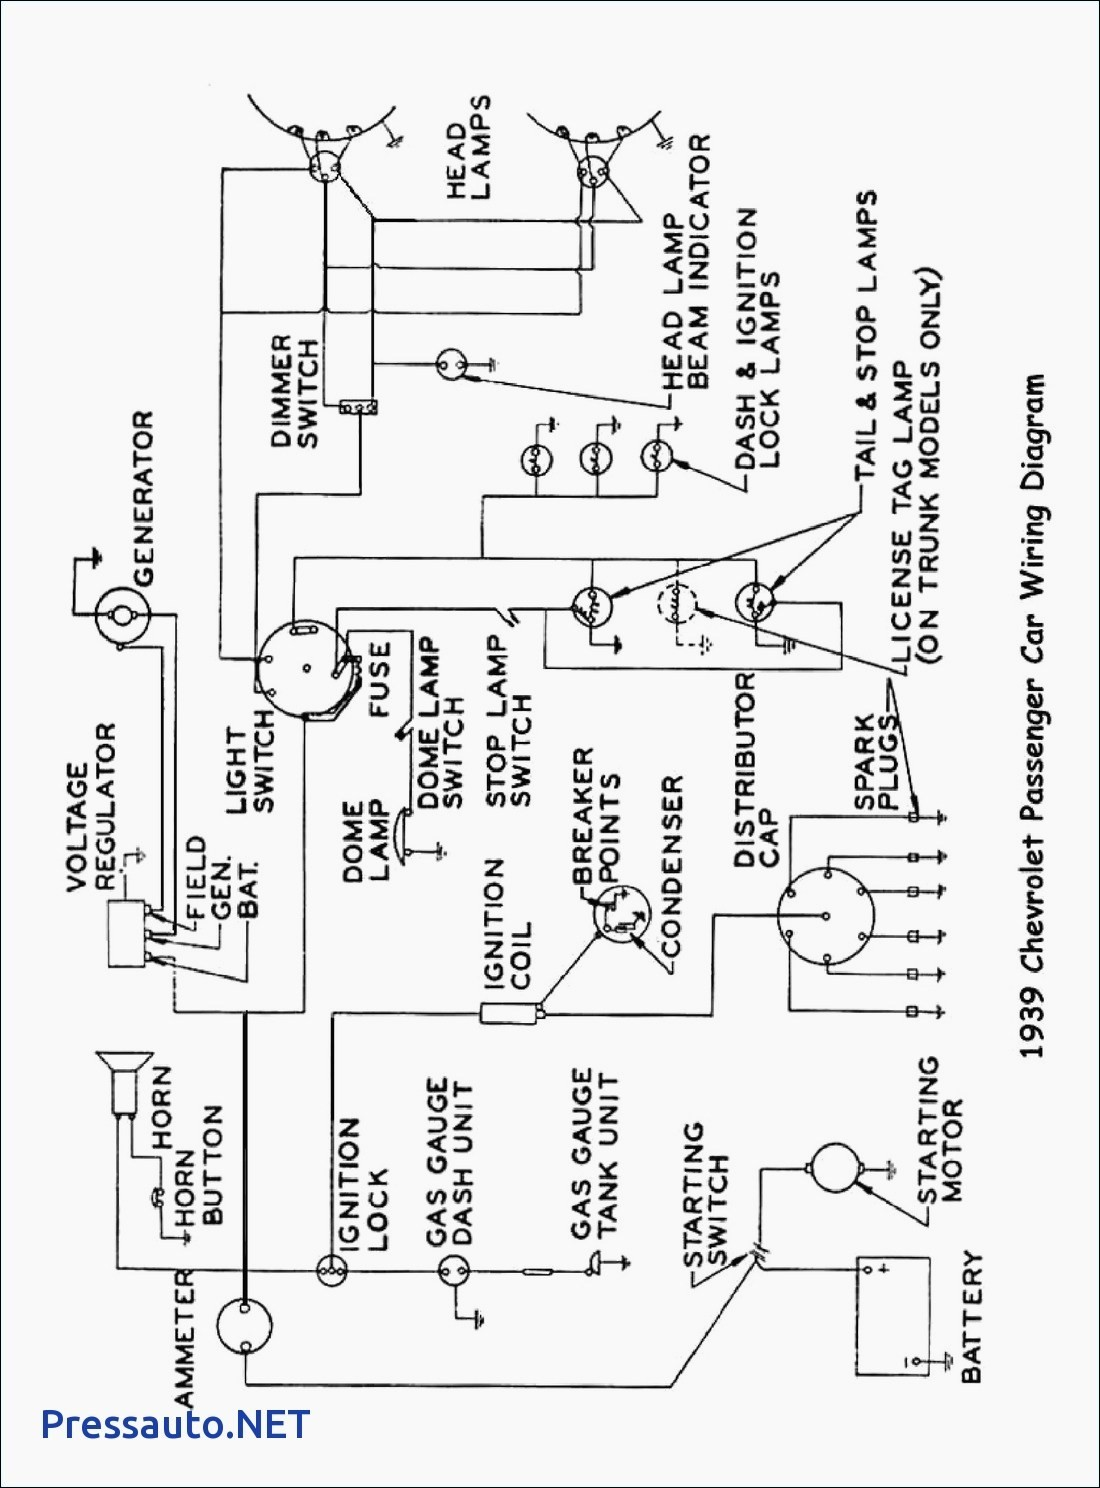 [CSDW_4250]   B6280 John Deere 1010 Wiring Diagram | Wiring Resources | John Deere 1010 Wiring Schematic |  | Wiring Resources